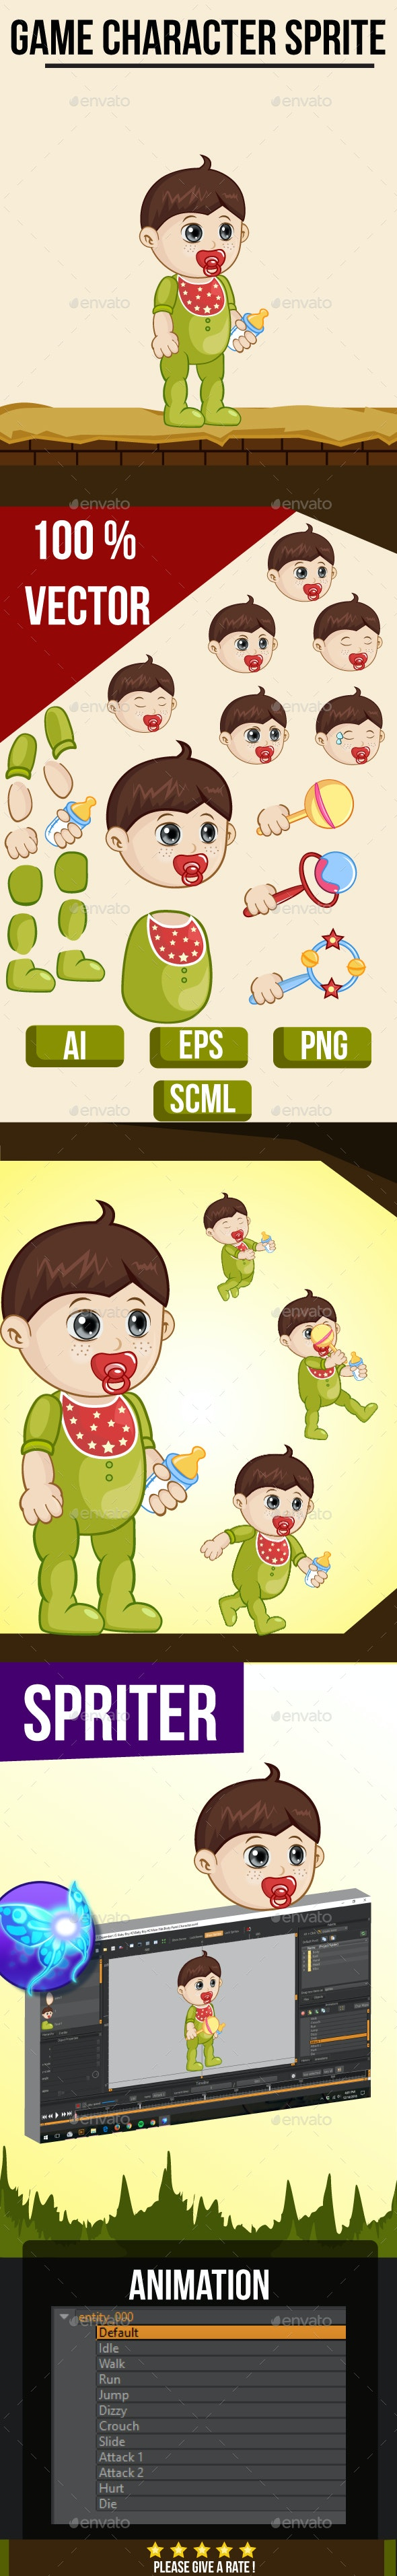 Baby Boy #2 Sprite Character - Sprites Game Assets